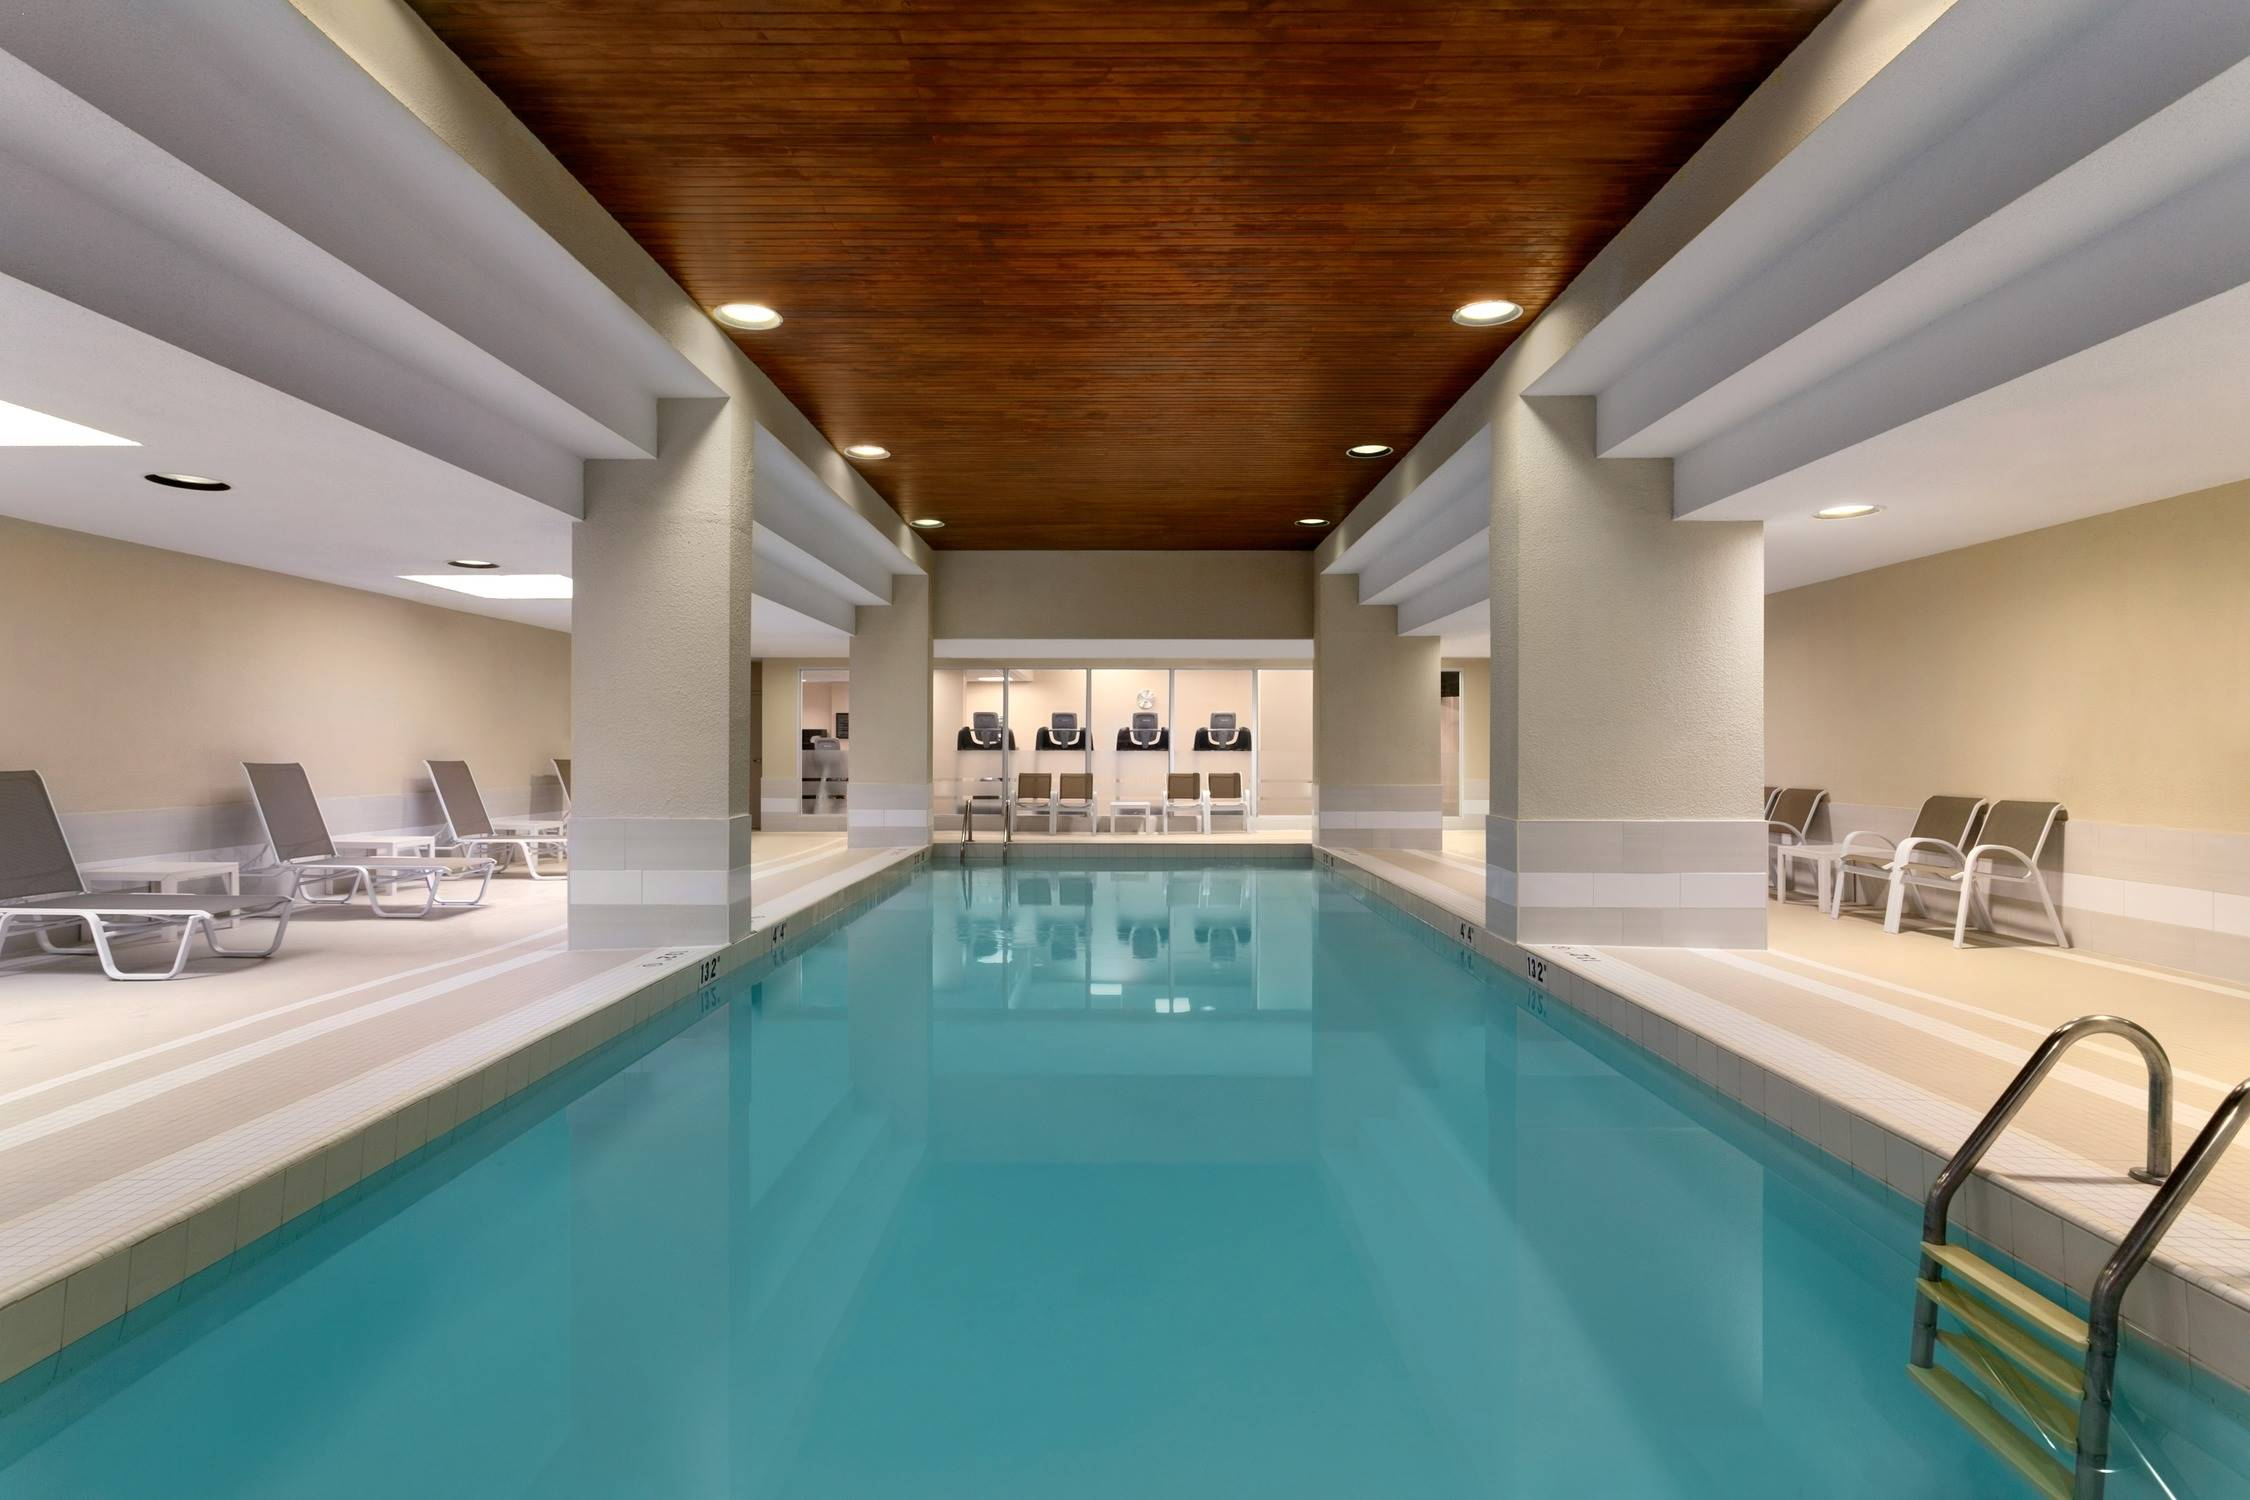 DoubleTree by Hilton - Nestled right in the heart of downtown Toronto, this warm pool is great for swimmers of all ages and abilities. Enjoy warm water, free wifi, and towel service.